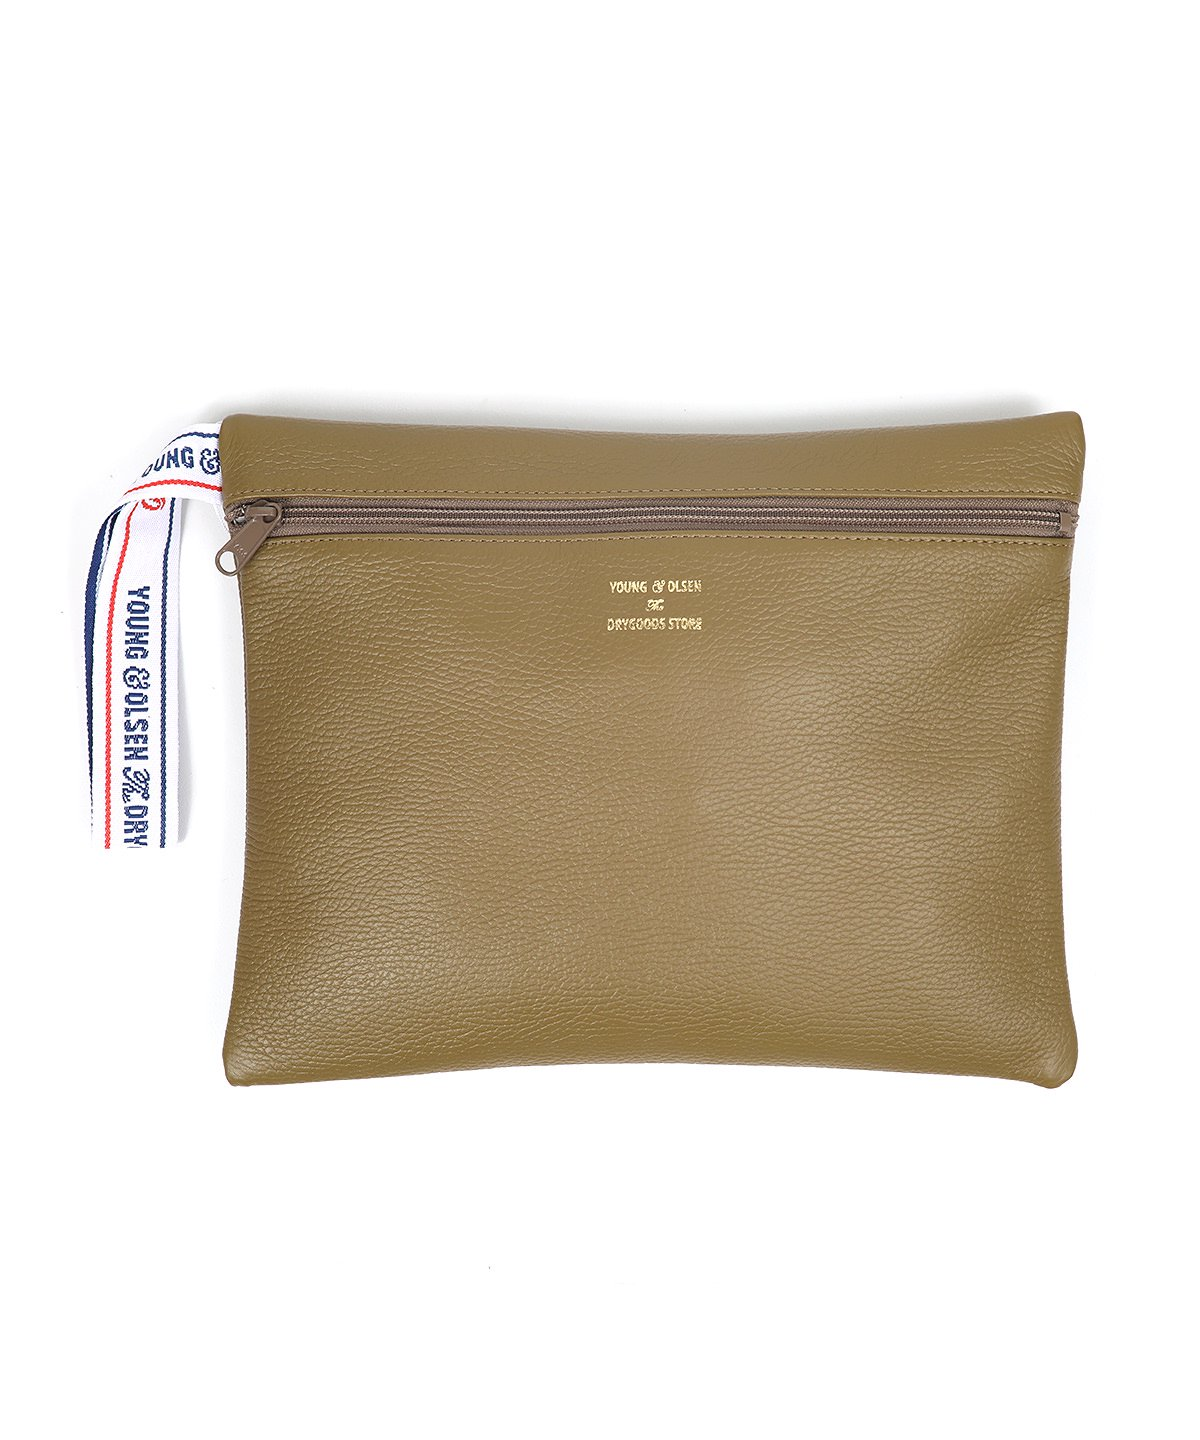 Y&O LEATHER POUCH L